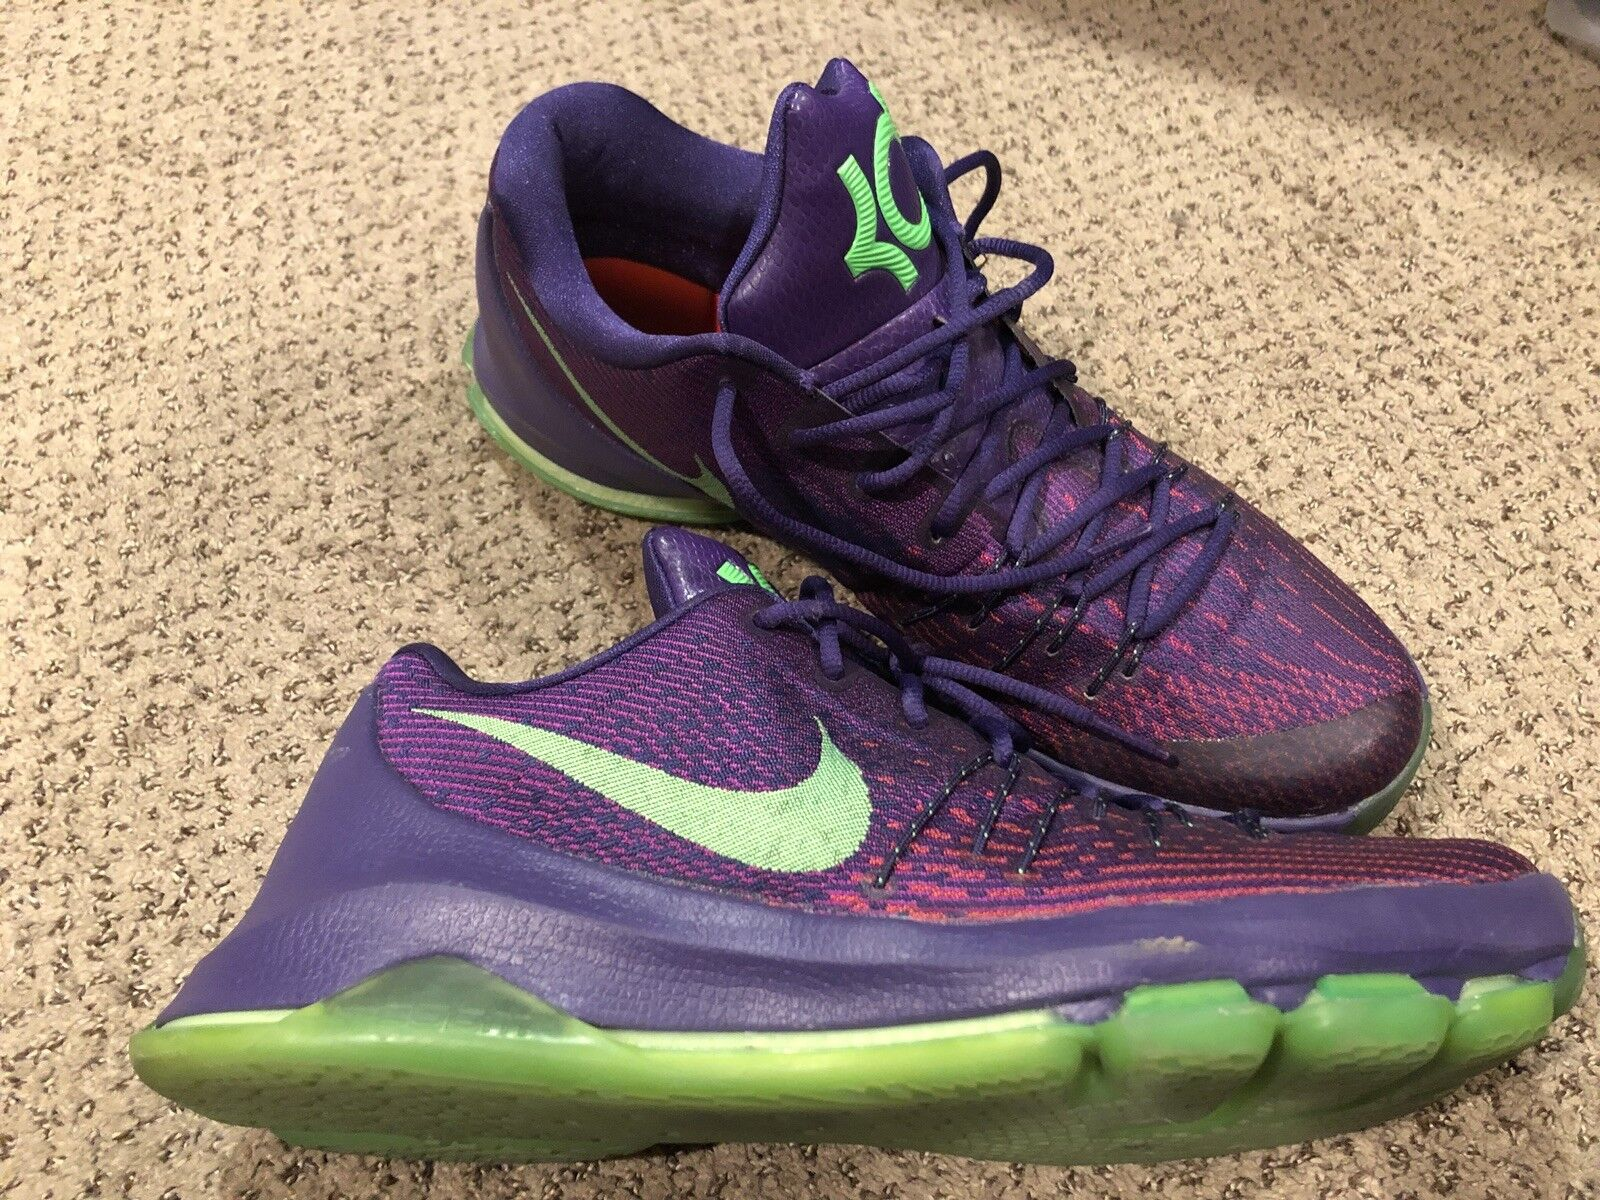 Nike KD 8 Size 12 Purple And Green Great Condition